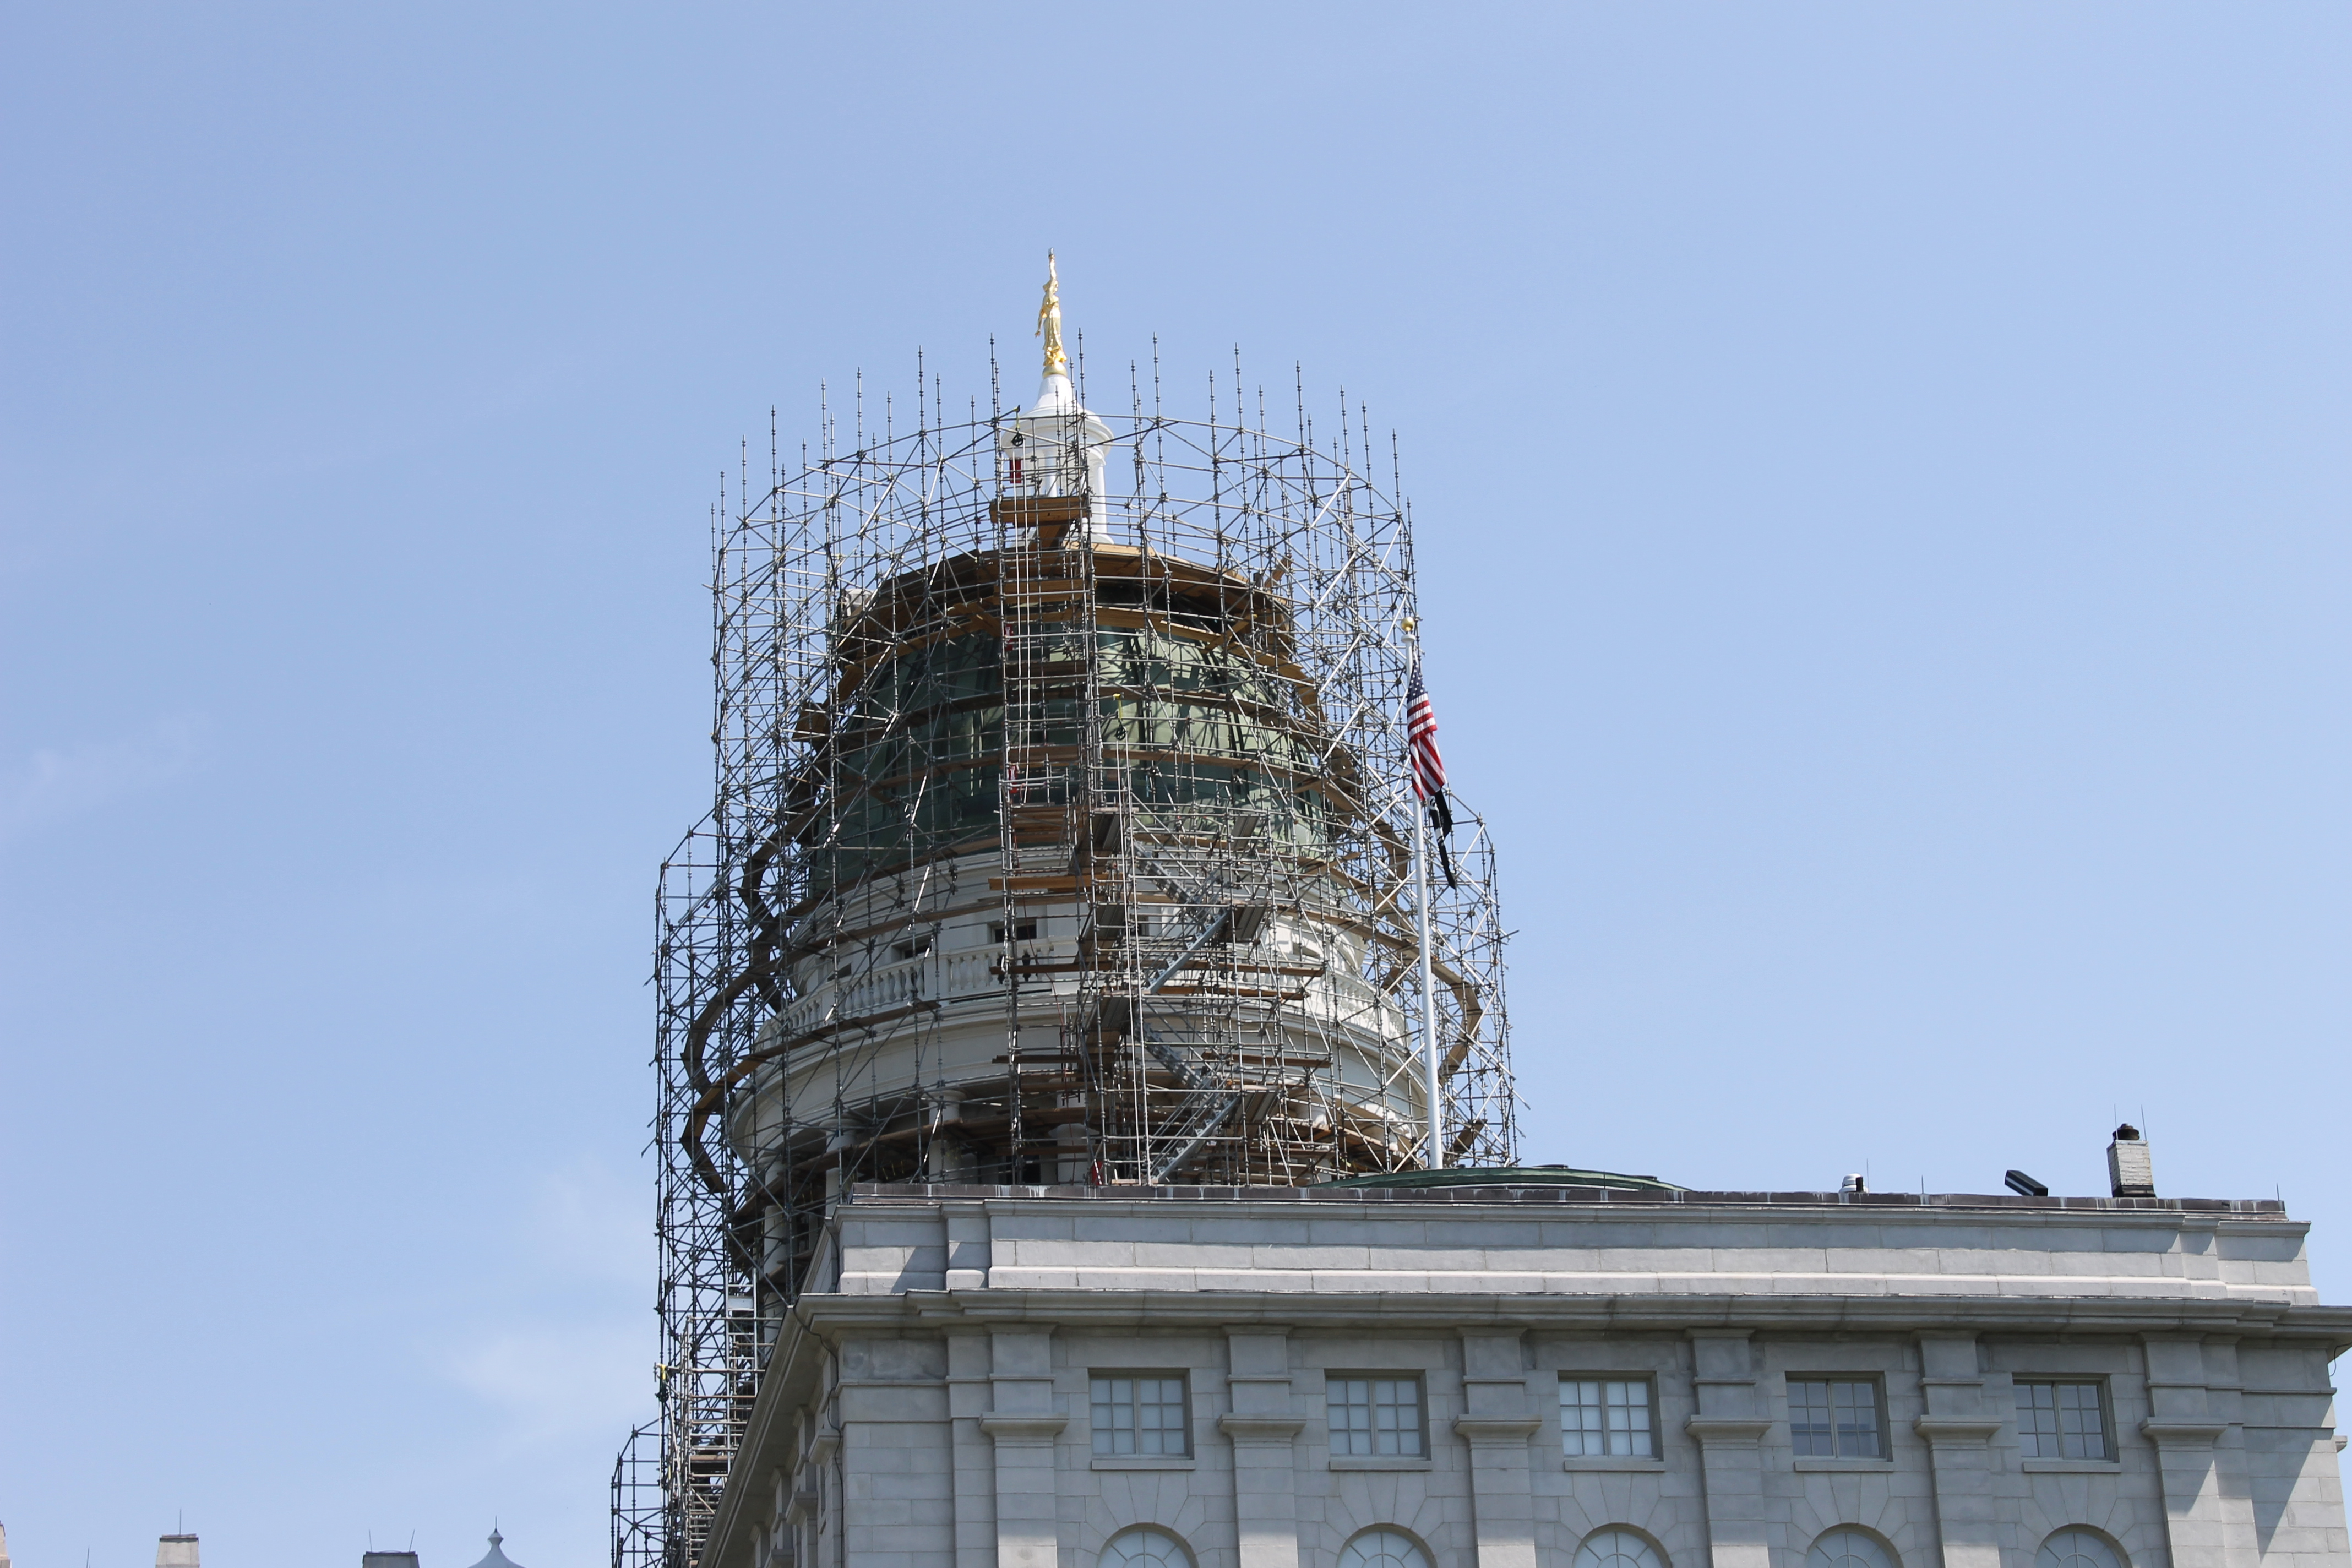 Capitol Building Scaffolding : File scaffolding on maine capitol dome augusta me img